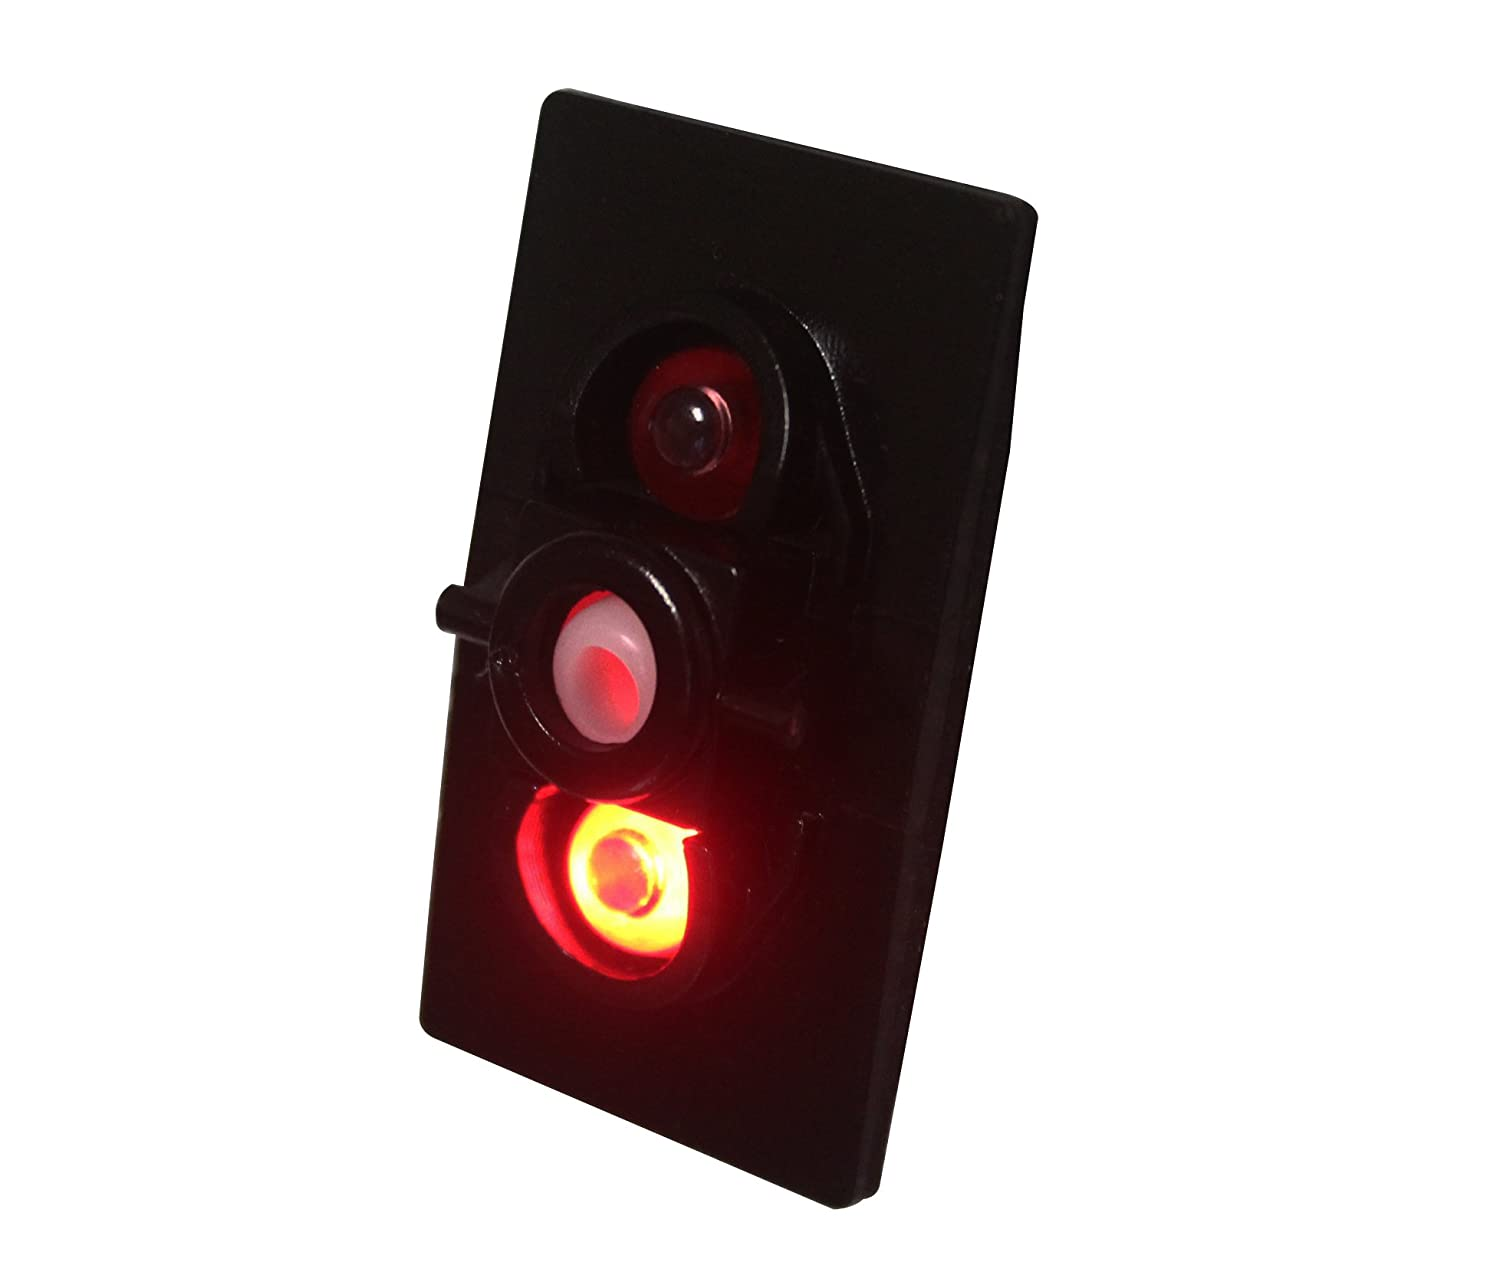 BANDC 12v//24v FRONT DIFF LOCK Rocker Switch on-off SPST 5 Pins RED Led for Marine Grade Car Boat RV WATERPROOF IP66